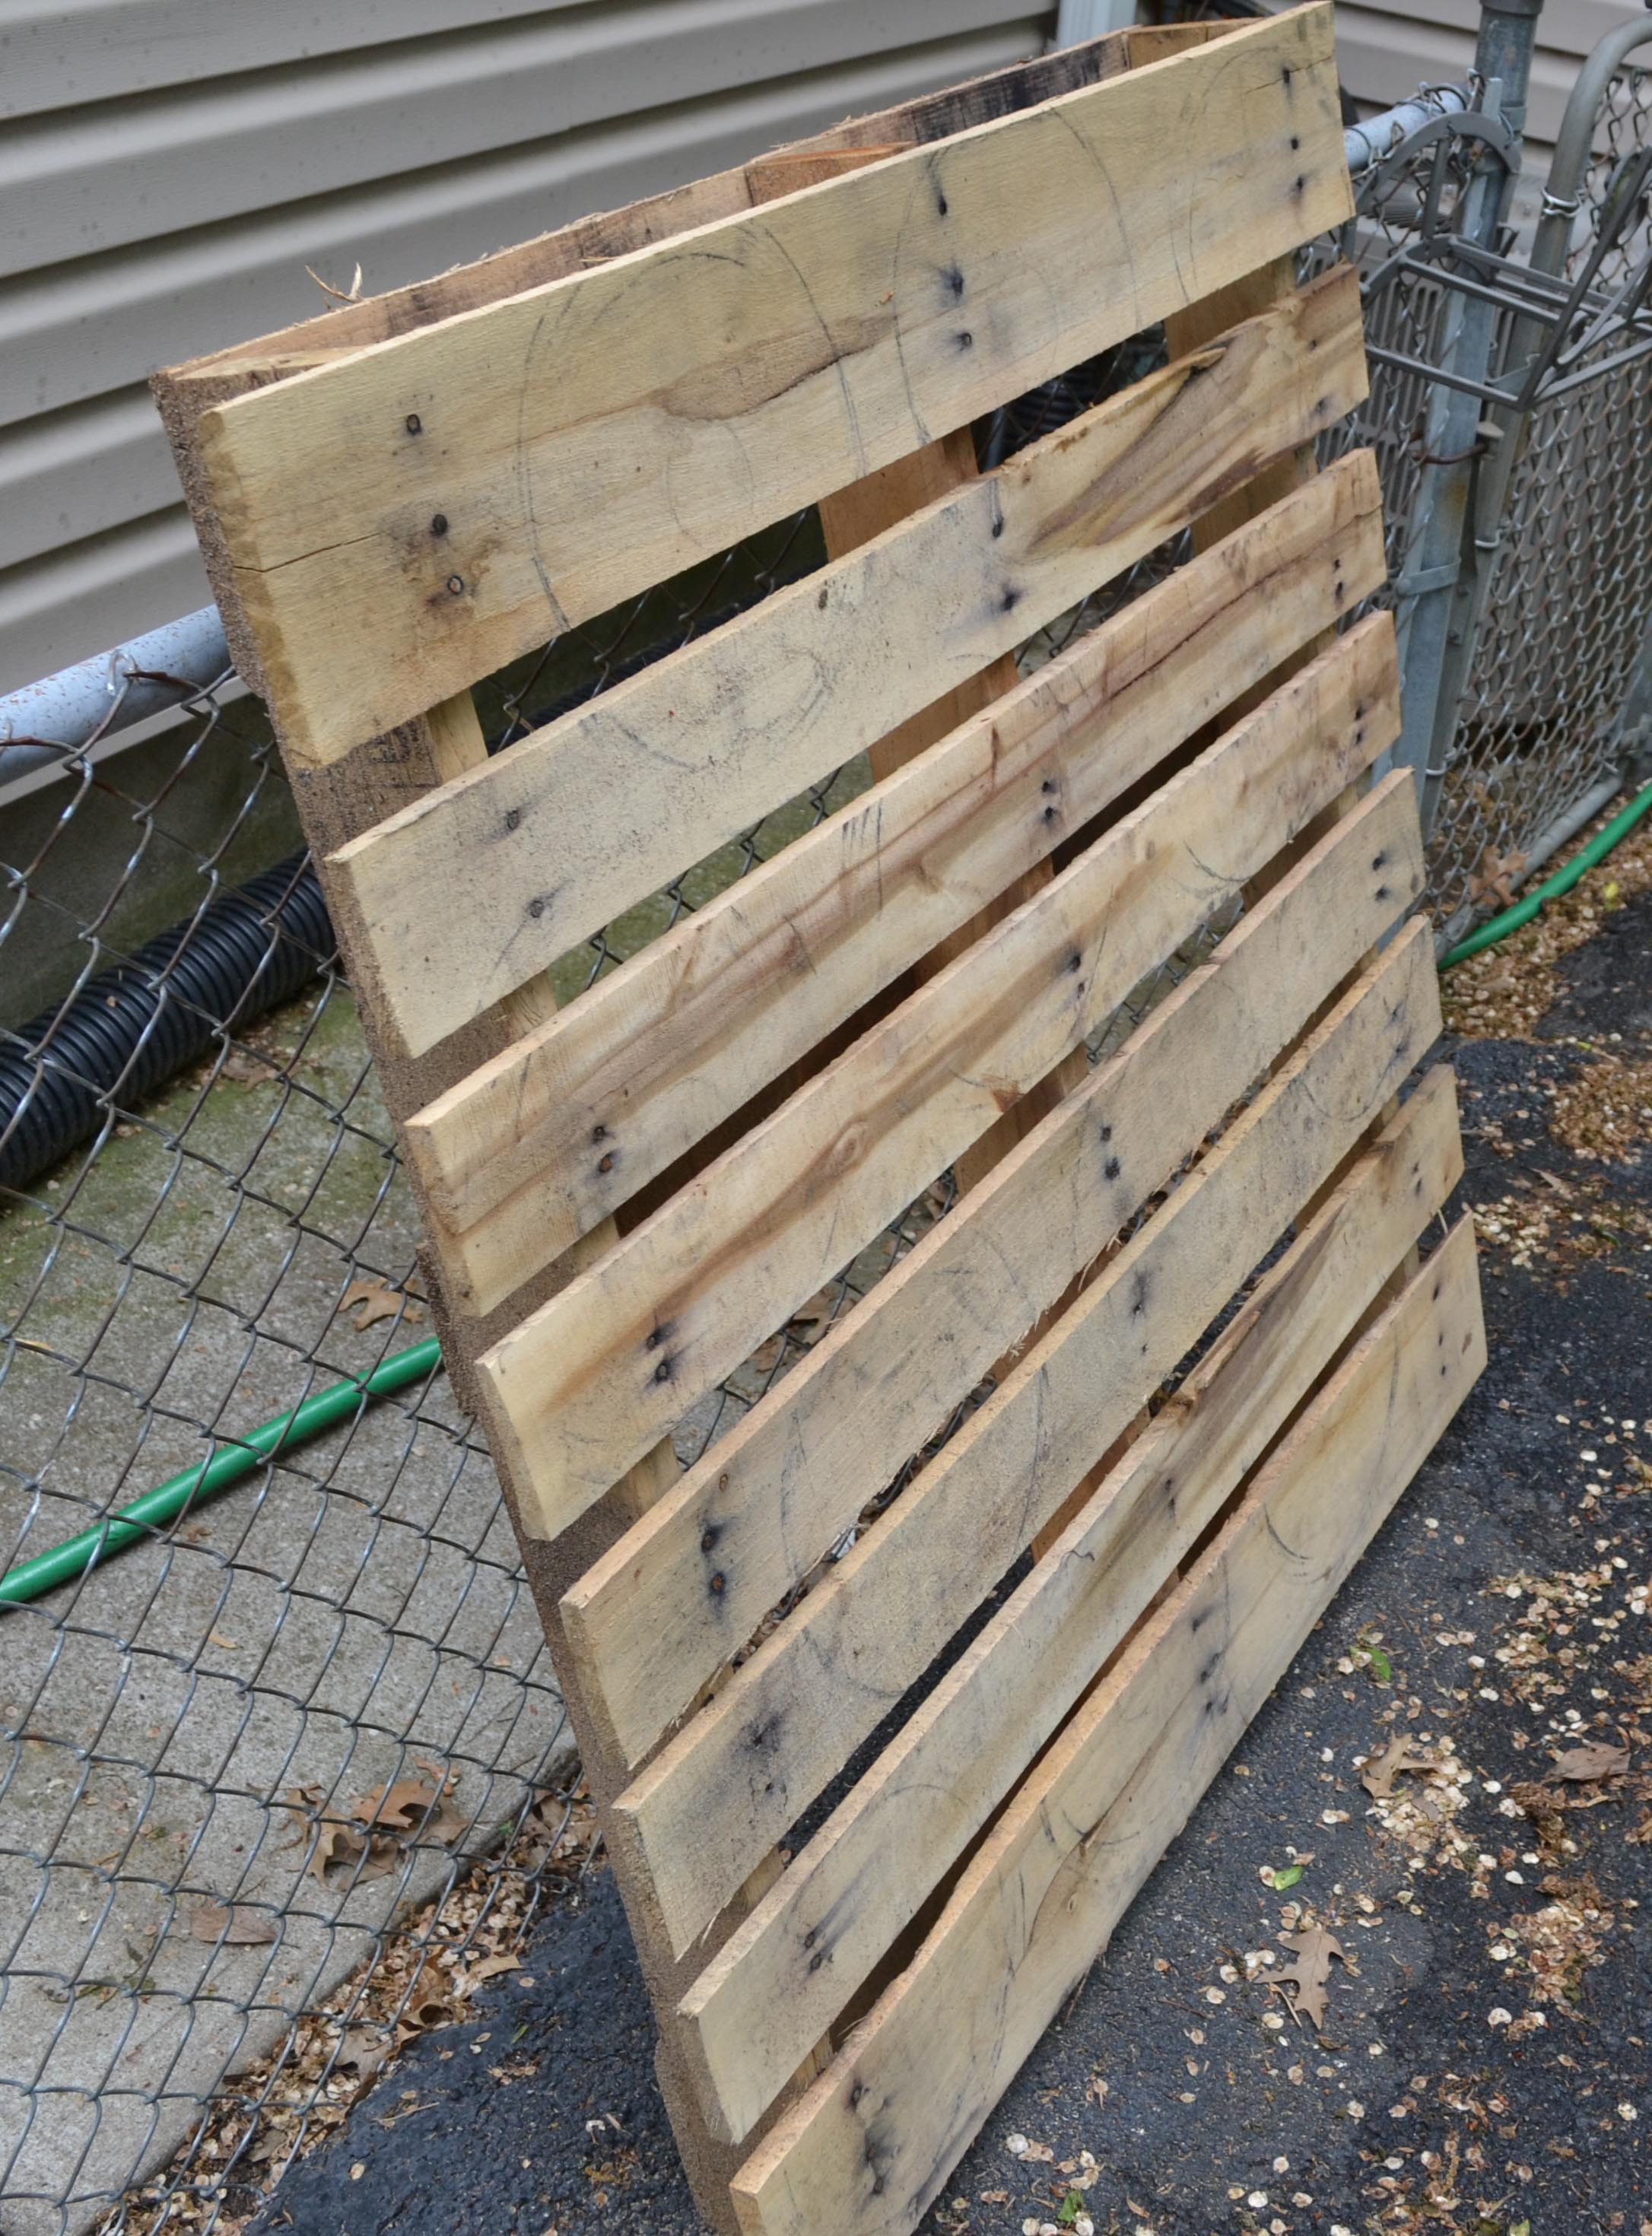 Making Things Out Pallets He Had To Disassemble Them To A